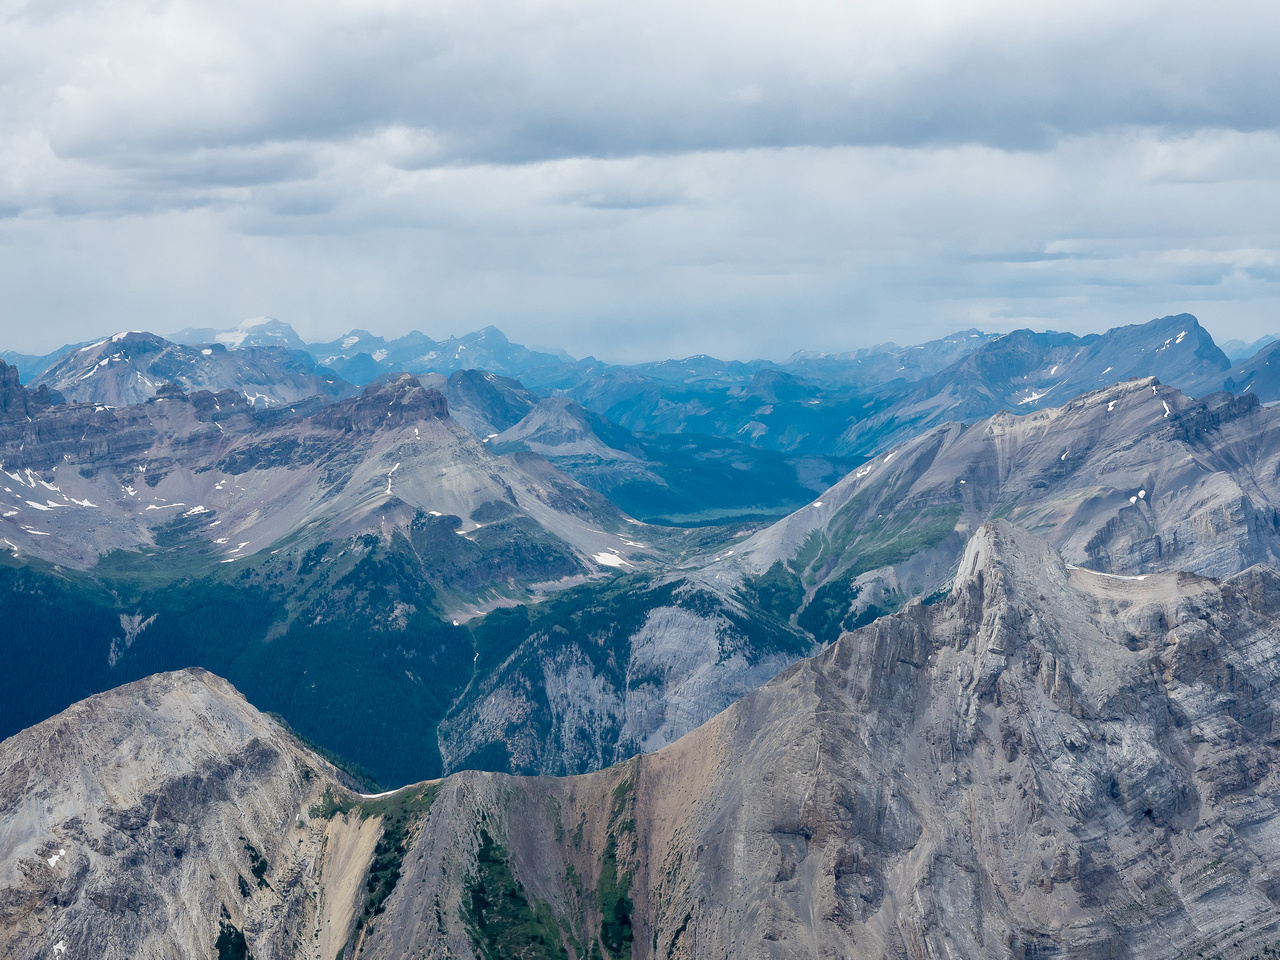 Looking over Wonder Pass with Marvel Peak in the foreground right, The Towers and Wonder Peak at mid distance and Lake Magog, The Nub, Nestor Peak, Mount Ball and even Citadel Peak, Citadel Pass, Gold